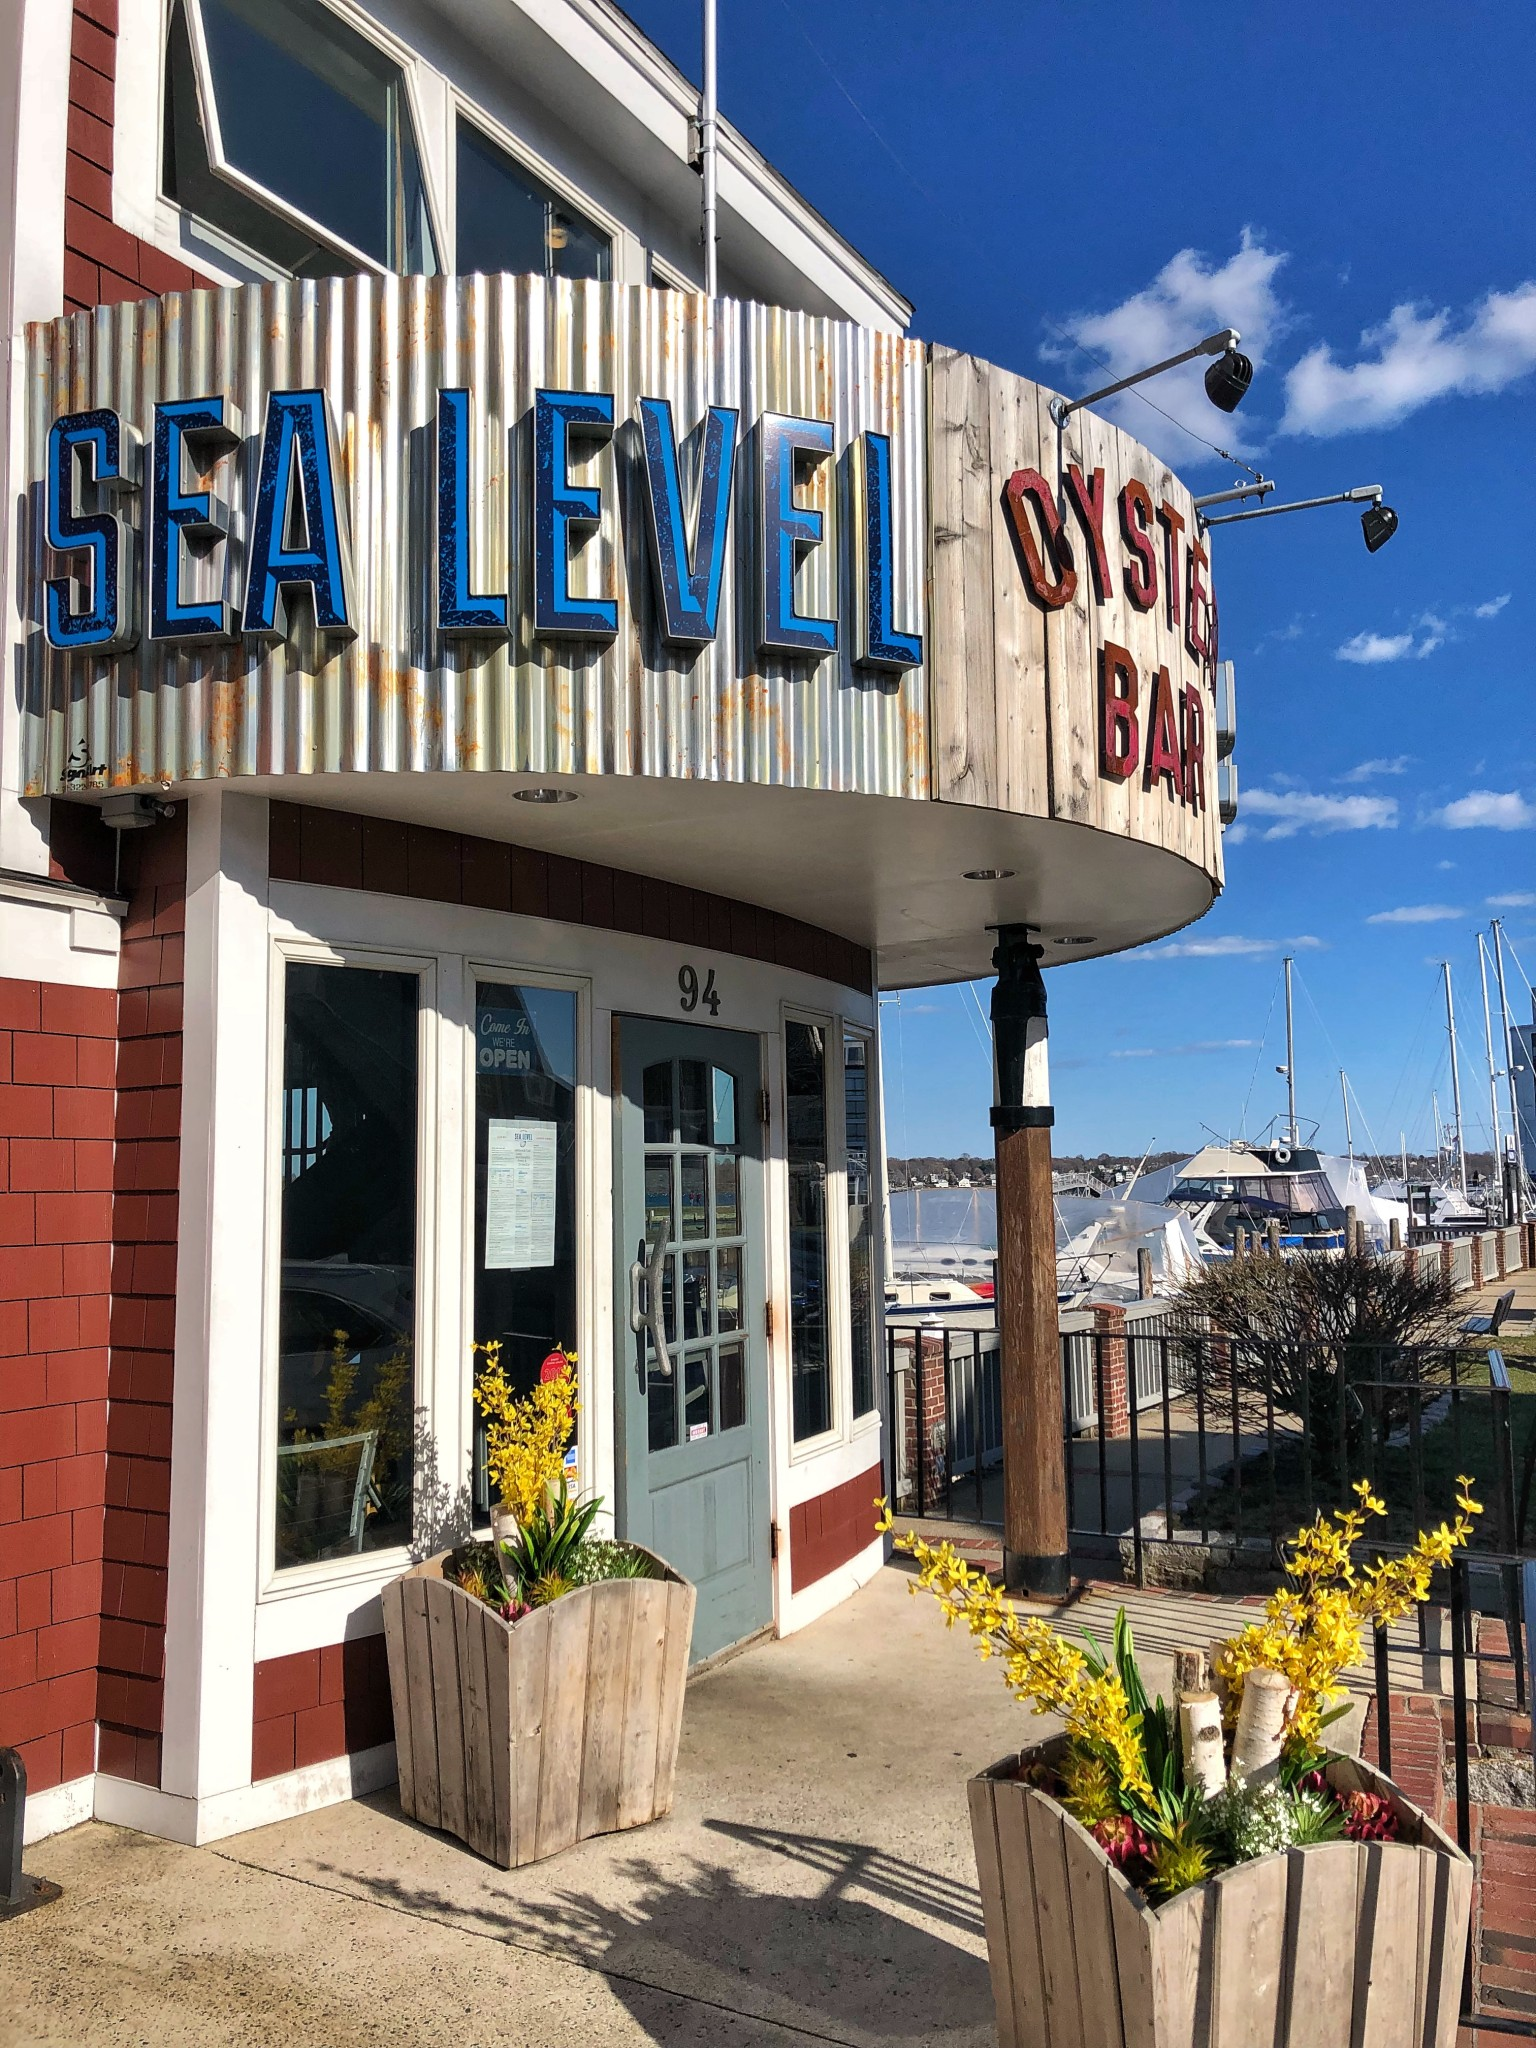 sea level, salem massachusetts, pickering wharf, the-alyst.com